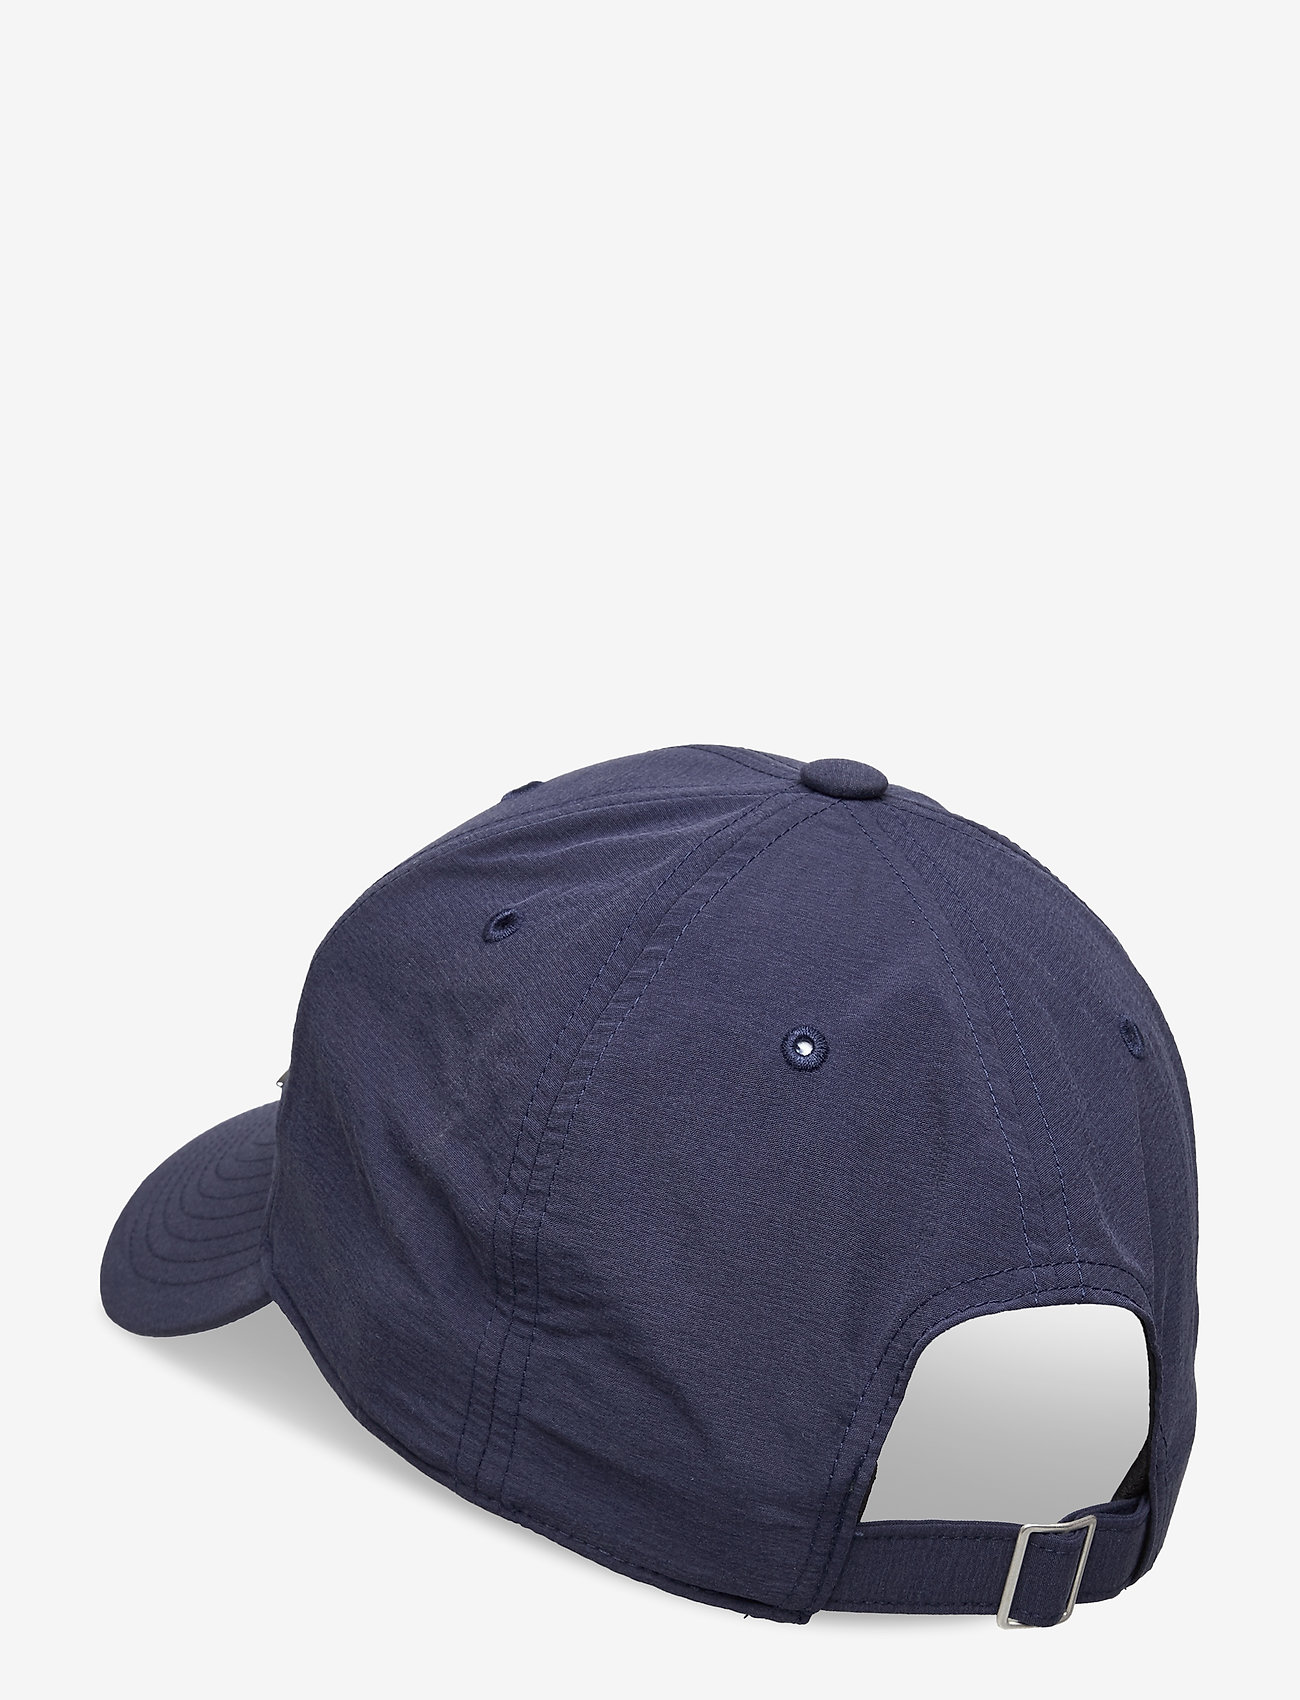 Te Badge Cap (Vecnav) (13.46 €) - Reebok Performance ojcZo